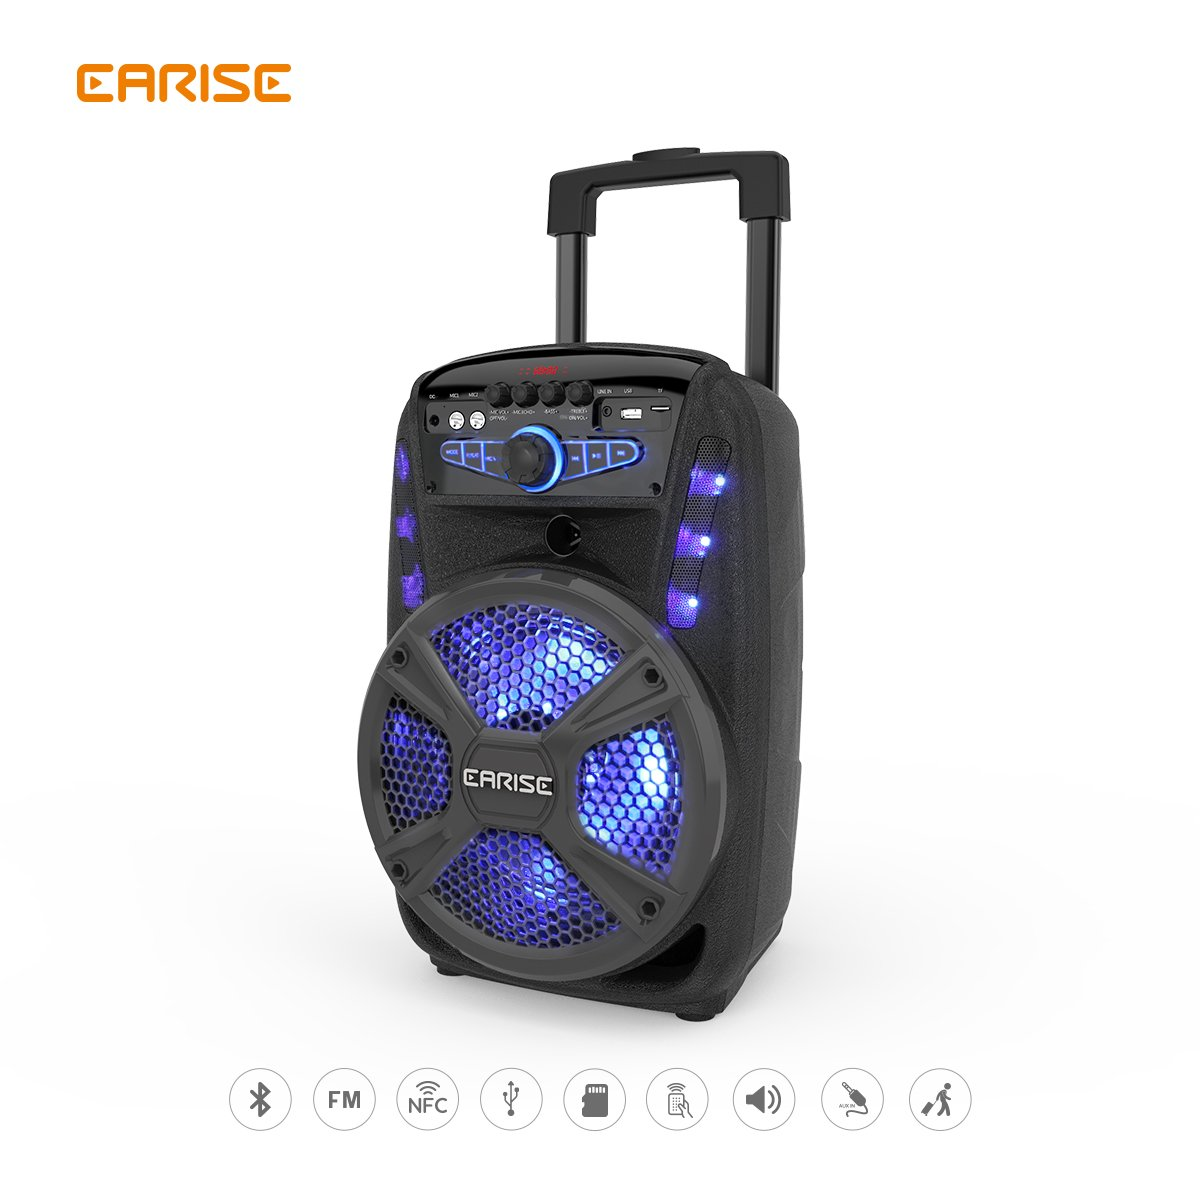 "EARISE 15-D/V16-D Audio Bluetooth PA System Portable Rechargeable 8"" /12"" Speaker with Wireless Microphone, Remote Control, FM Radio, LED Light, AUX/TF/USB/NFC, Stands Option (V15-D)"